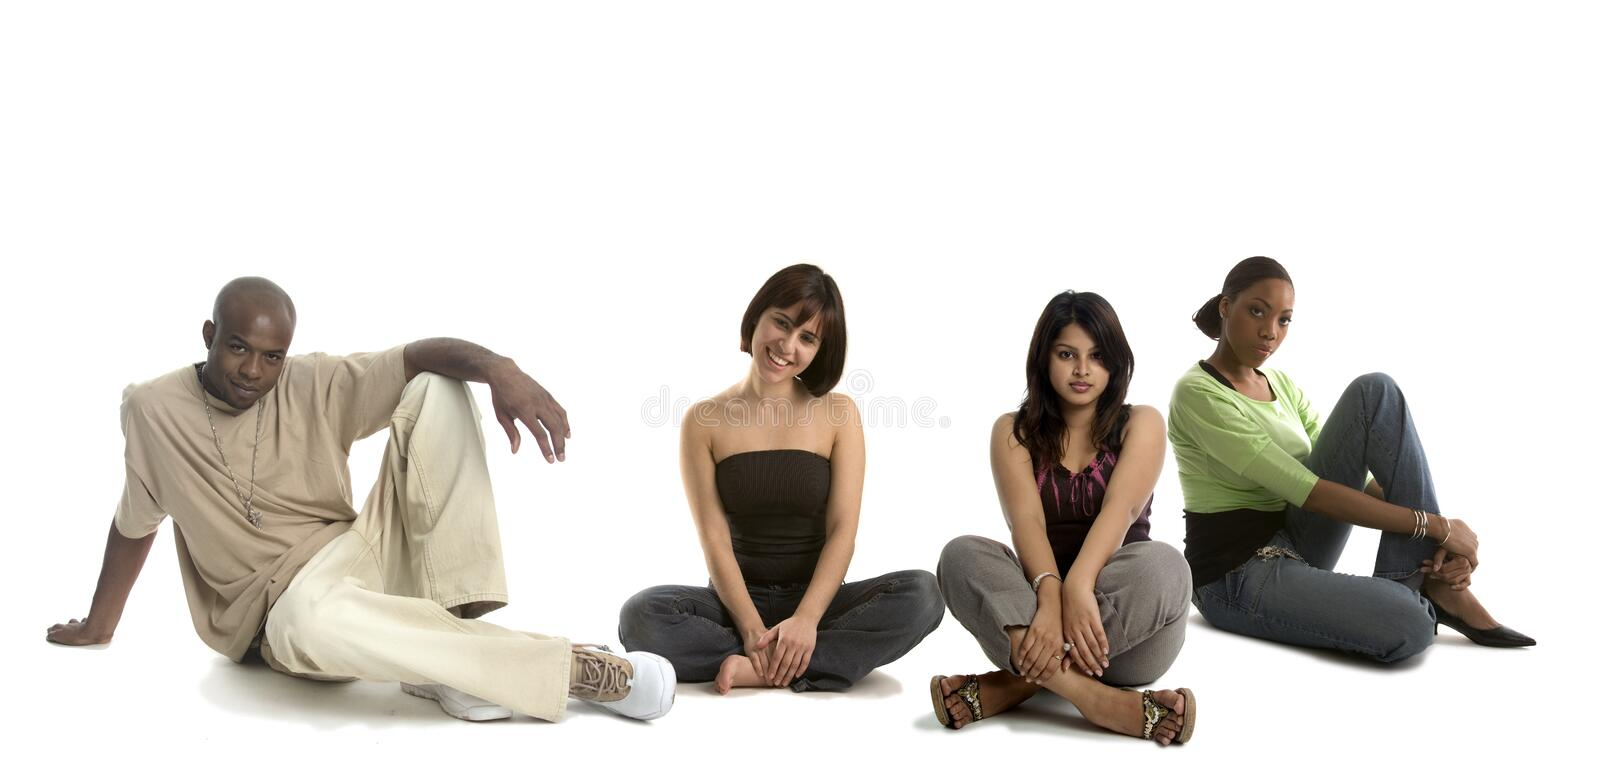 Three women and a man. Group of friends sitting